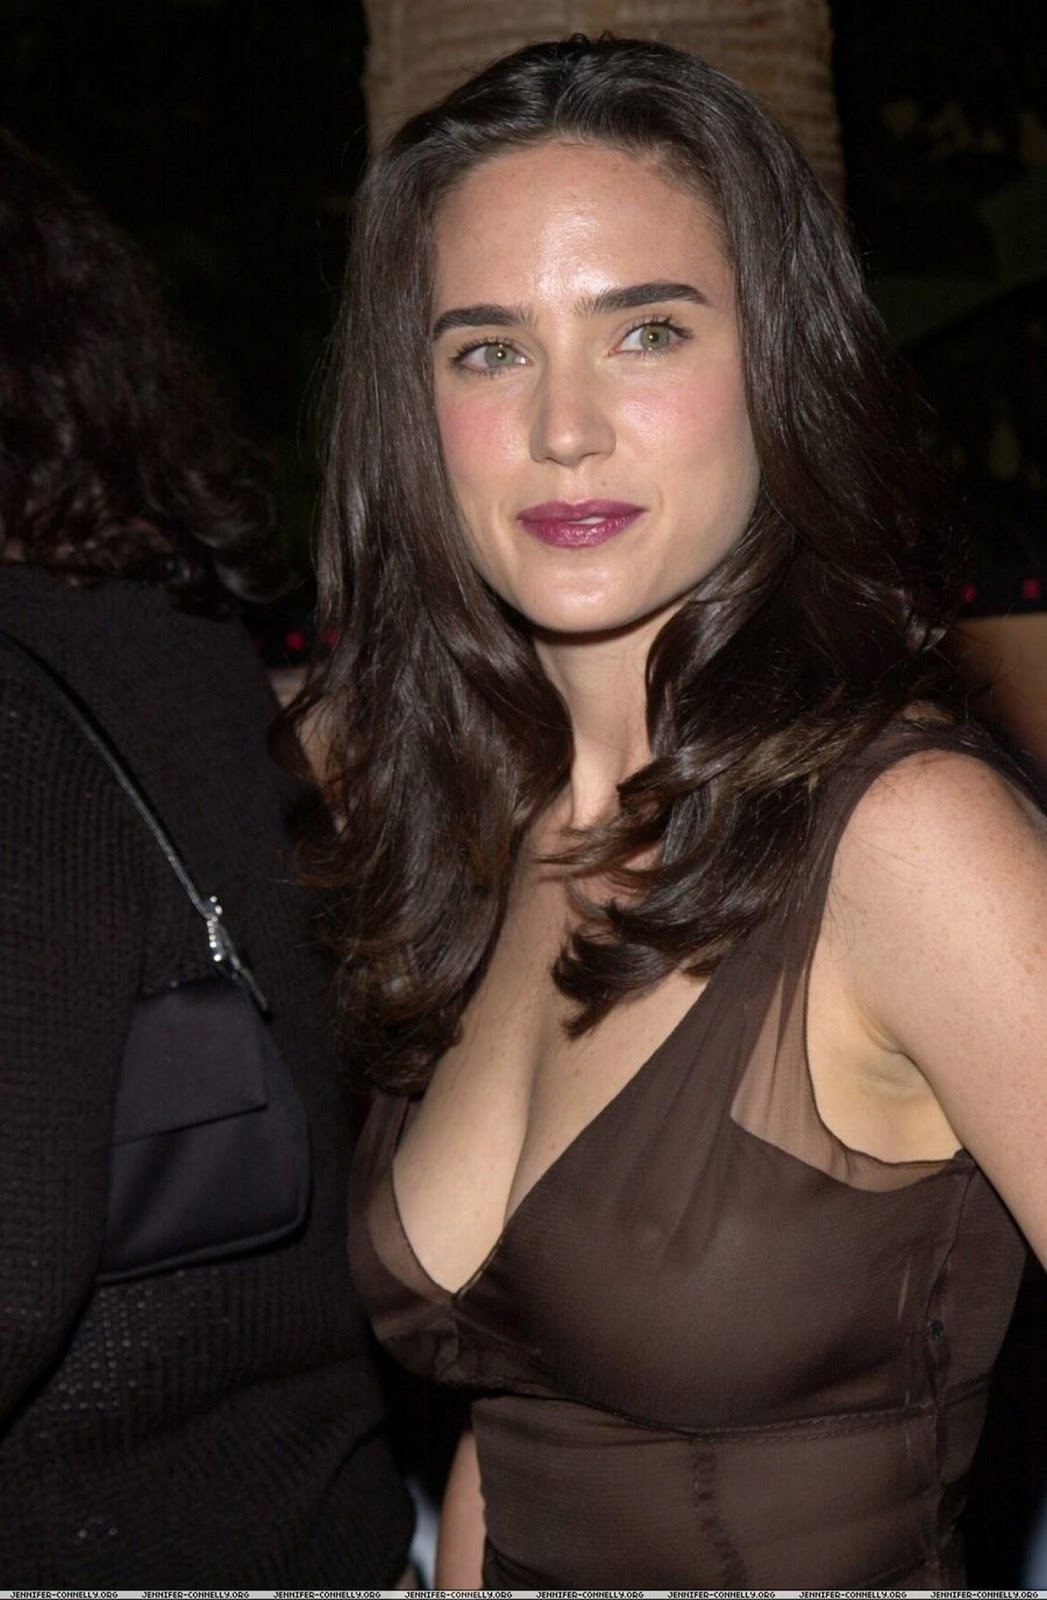 Naked pics of jennifer connelly